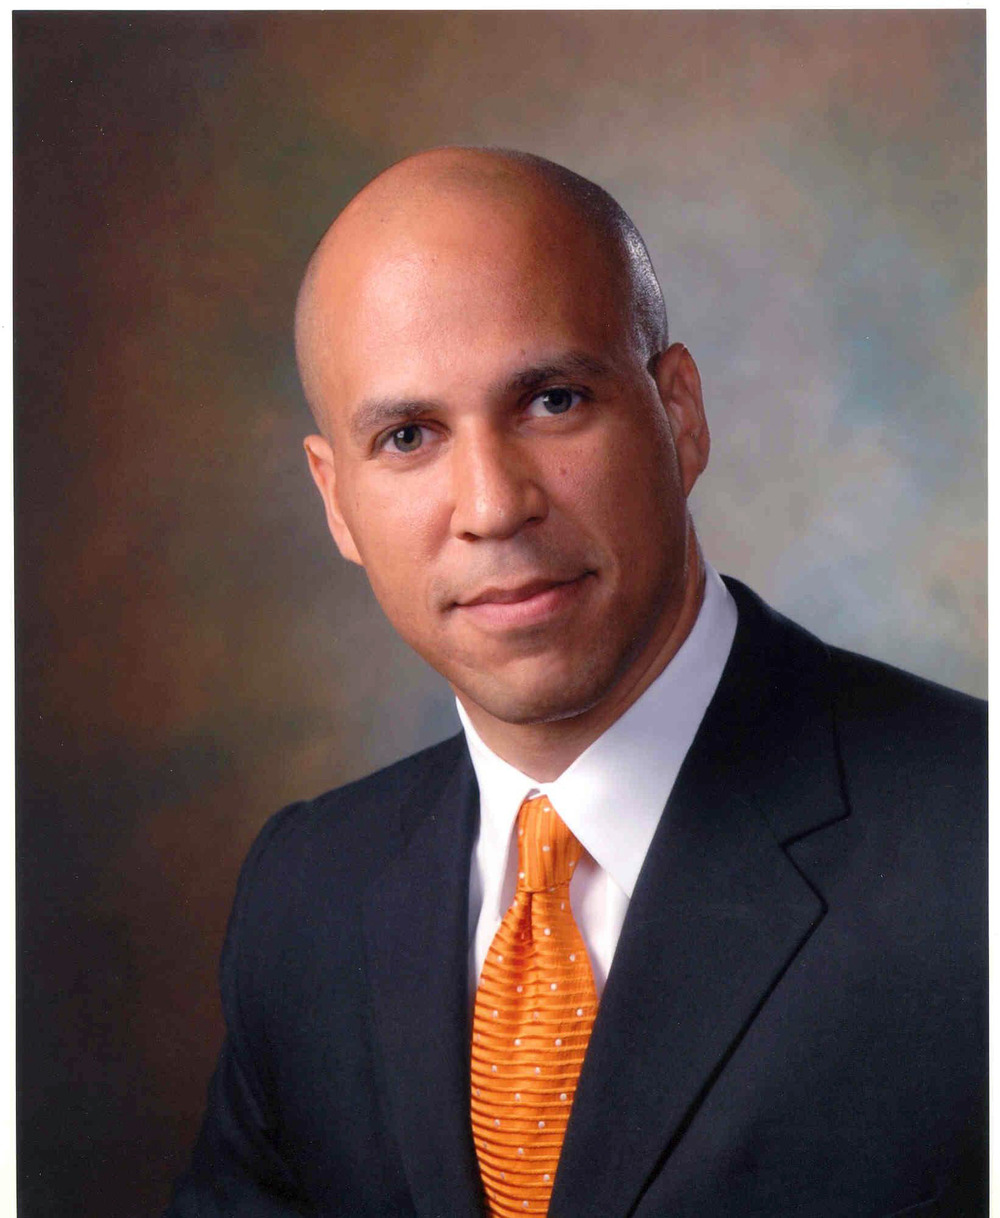 2012_07_24_17_29_43_531_Mayor_Cory_Booker.jpg